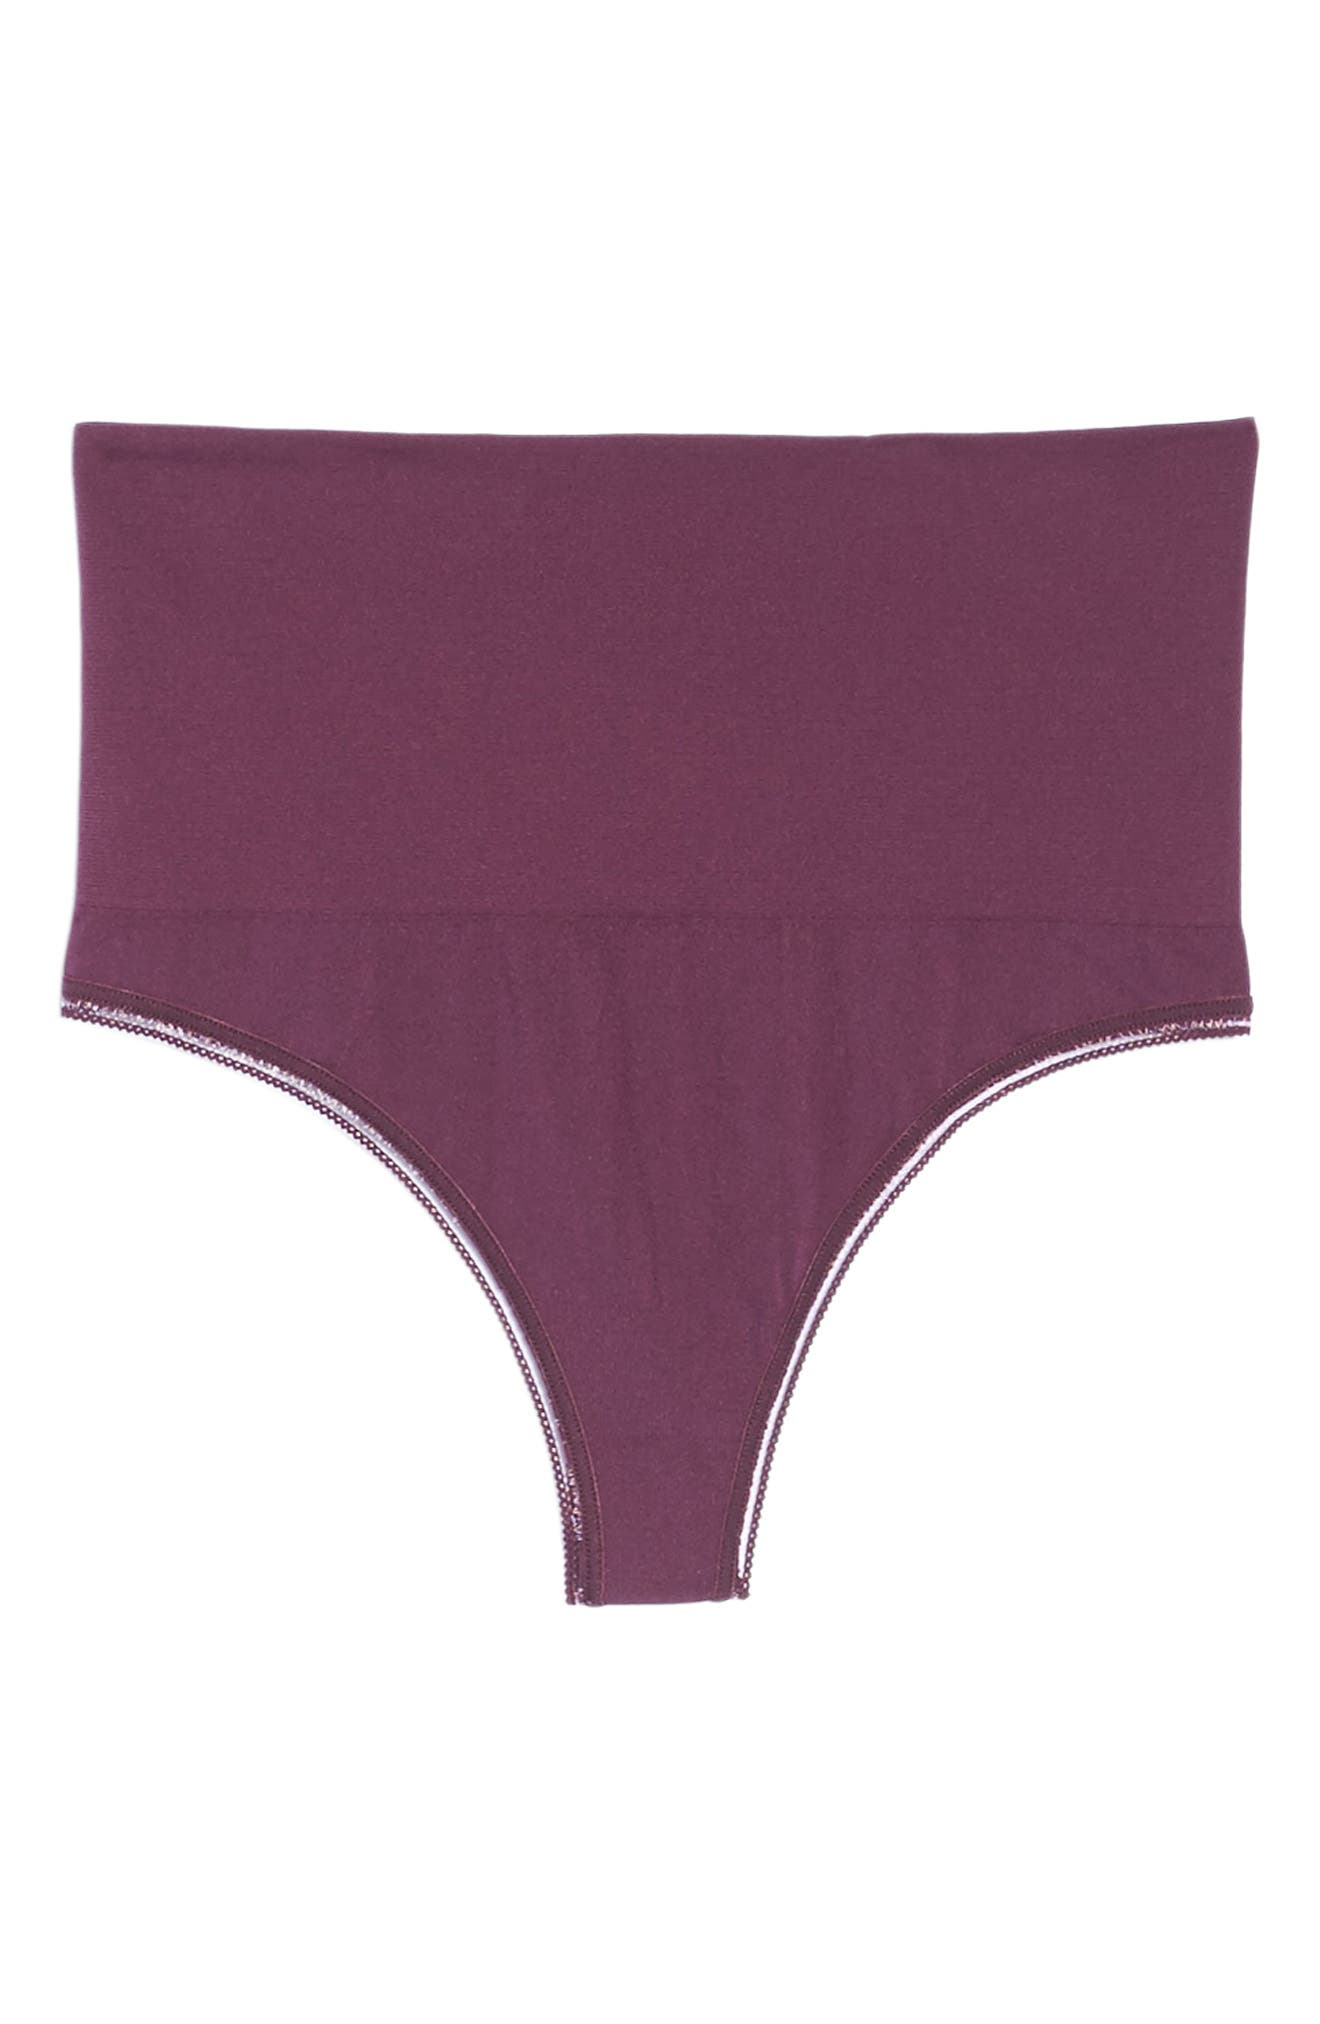 Alternate Image 4  - Yummie Ultralight Seamless Shaping Thong (2 for $30)